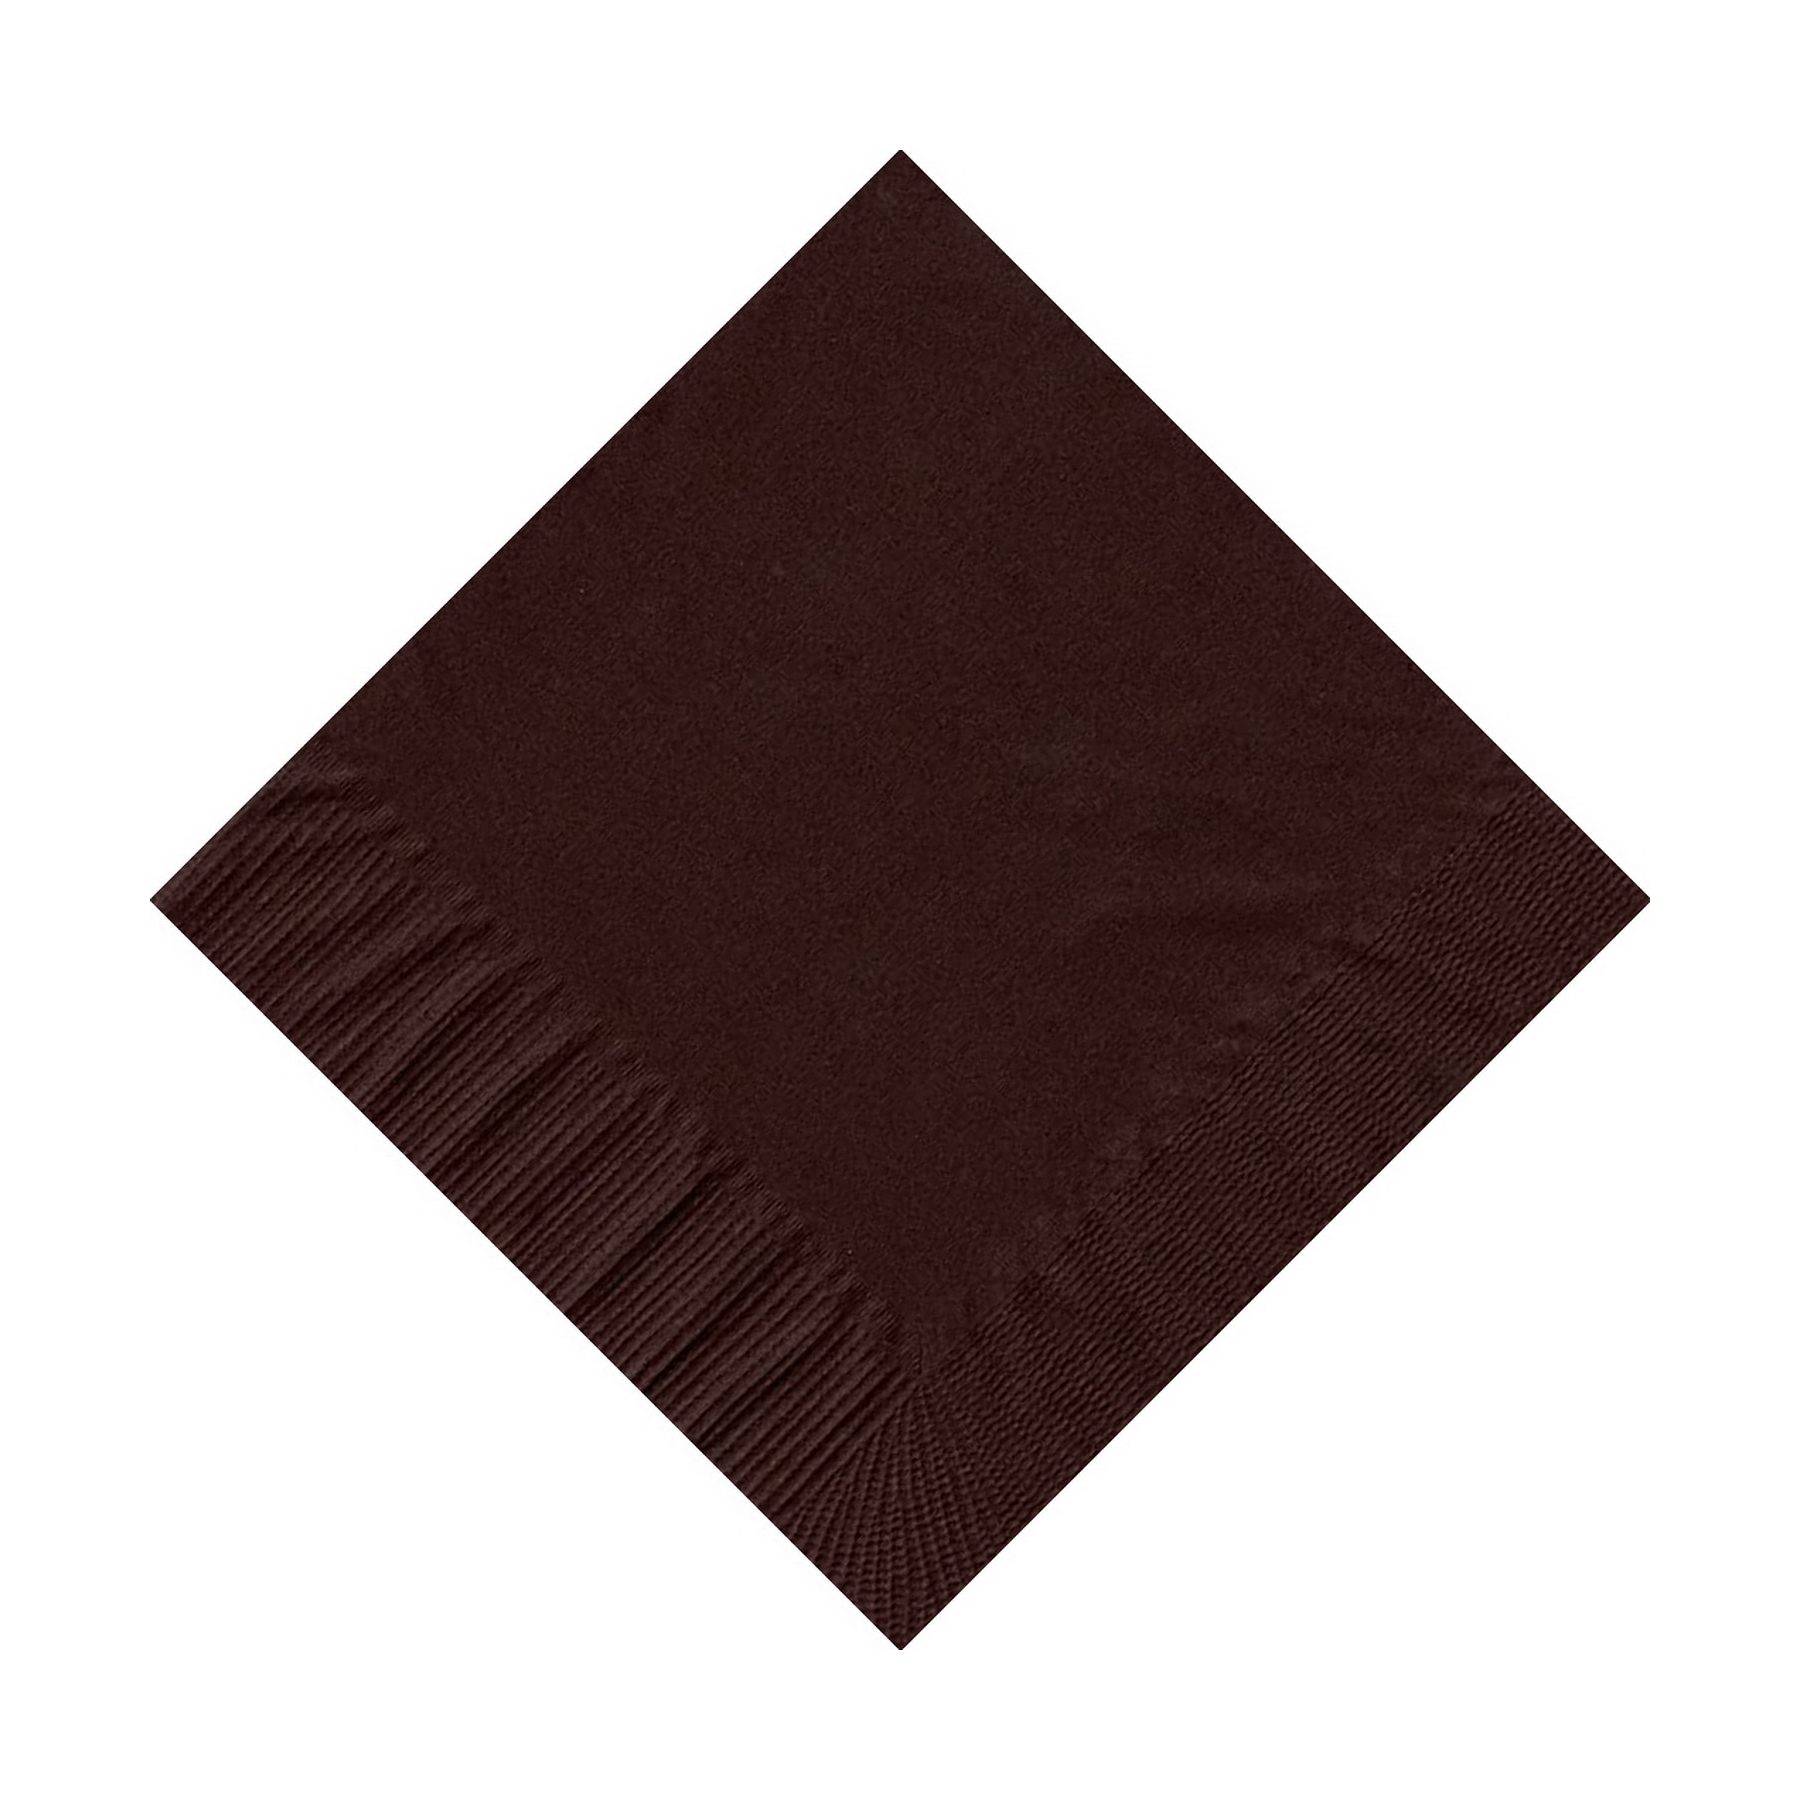 50 Plain Solid Colors Beverage Cocktail Napkins Paper Brown by CREATIVE CONVERTING